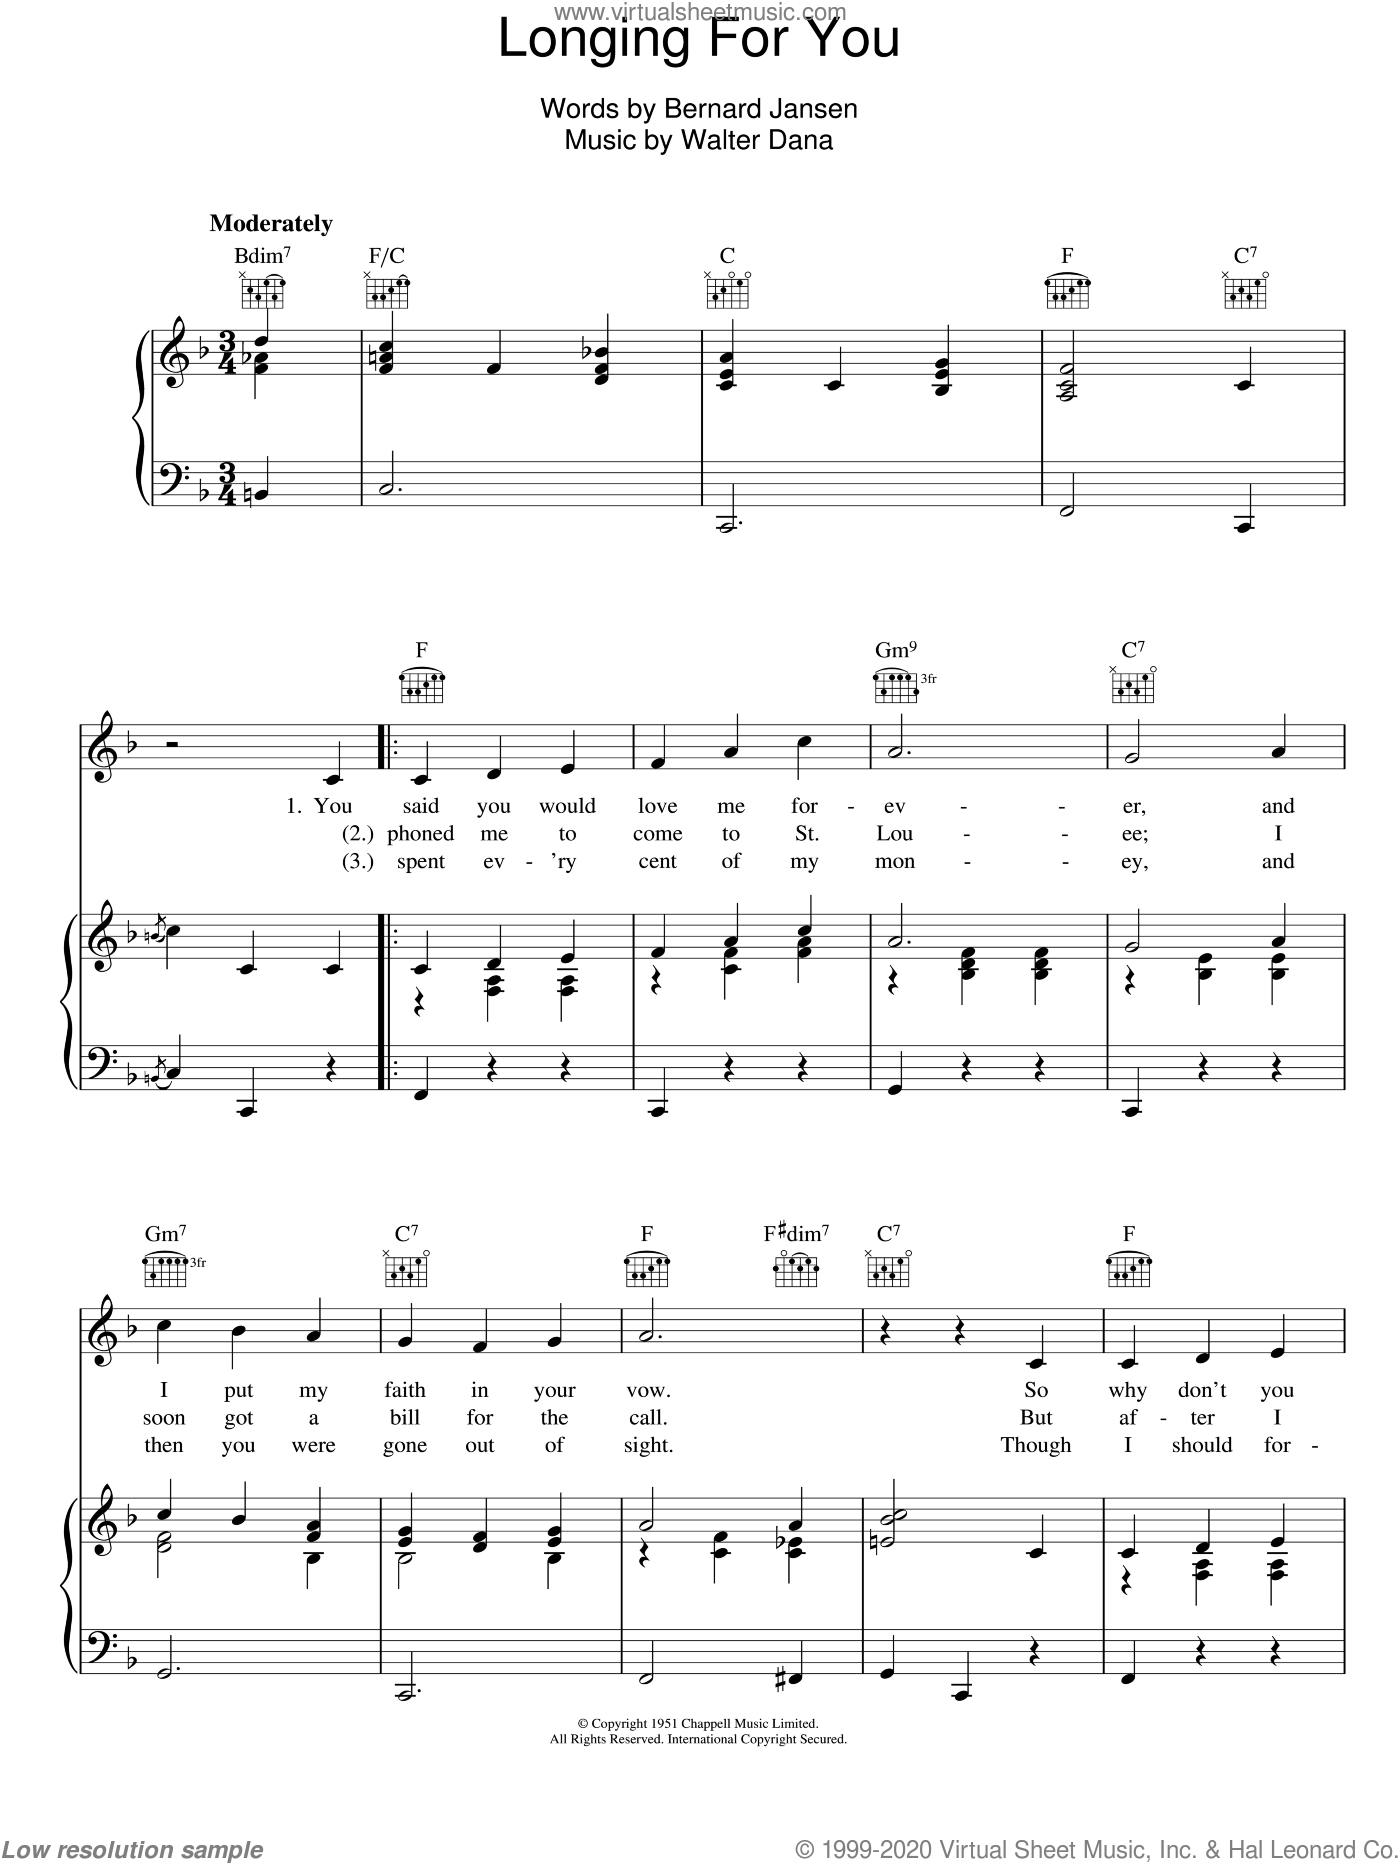 Longing For You sheet music for voice, piano or guitar by Walter Dana